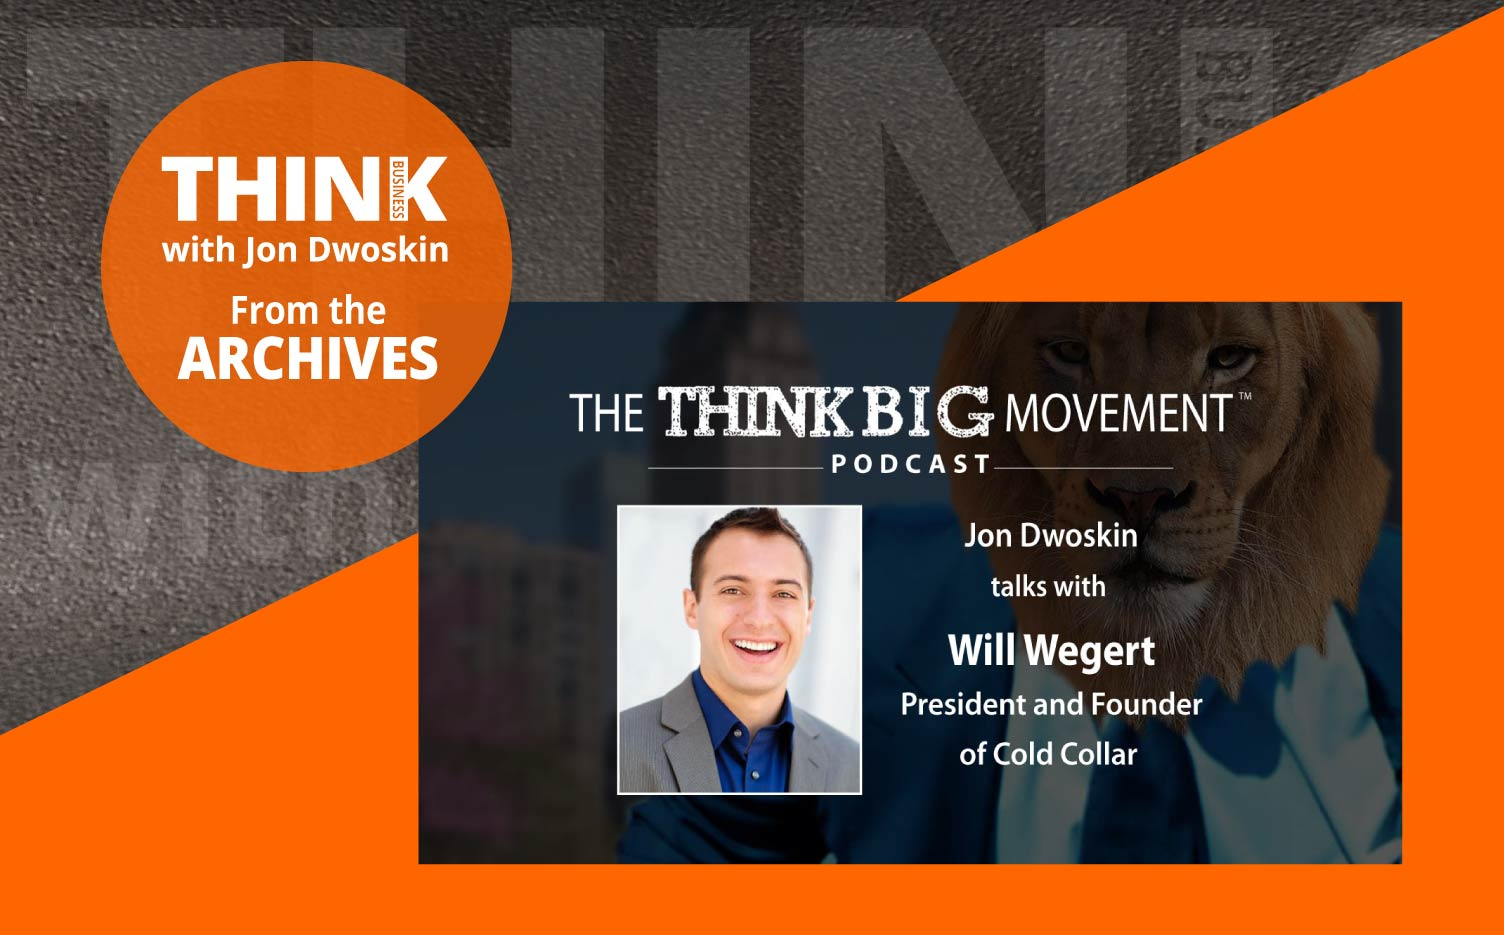 THINK Business Podcast: Jon Dwoskin Interviews Will Wegert, President and Founder of Cold Collar